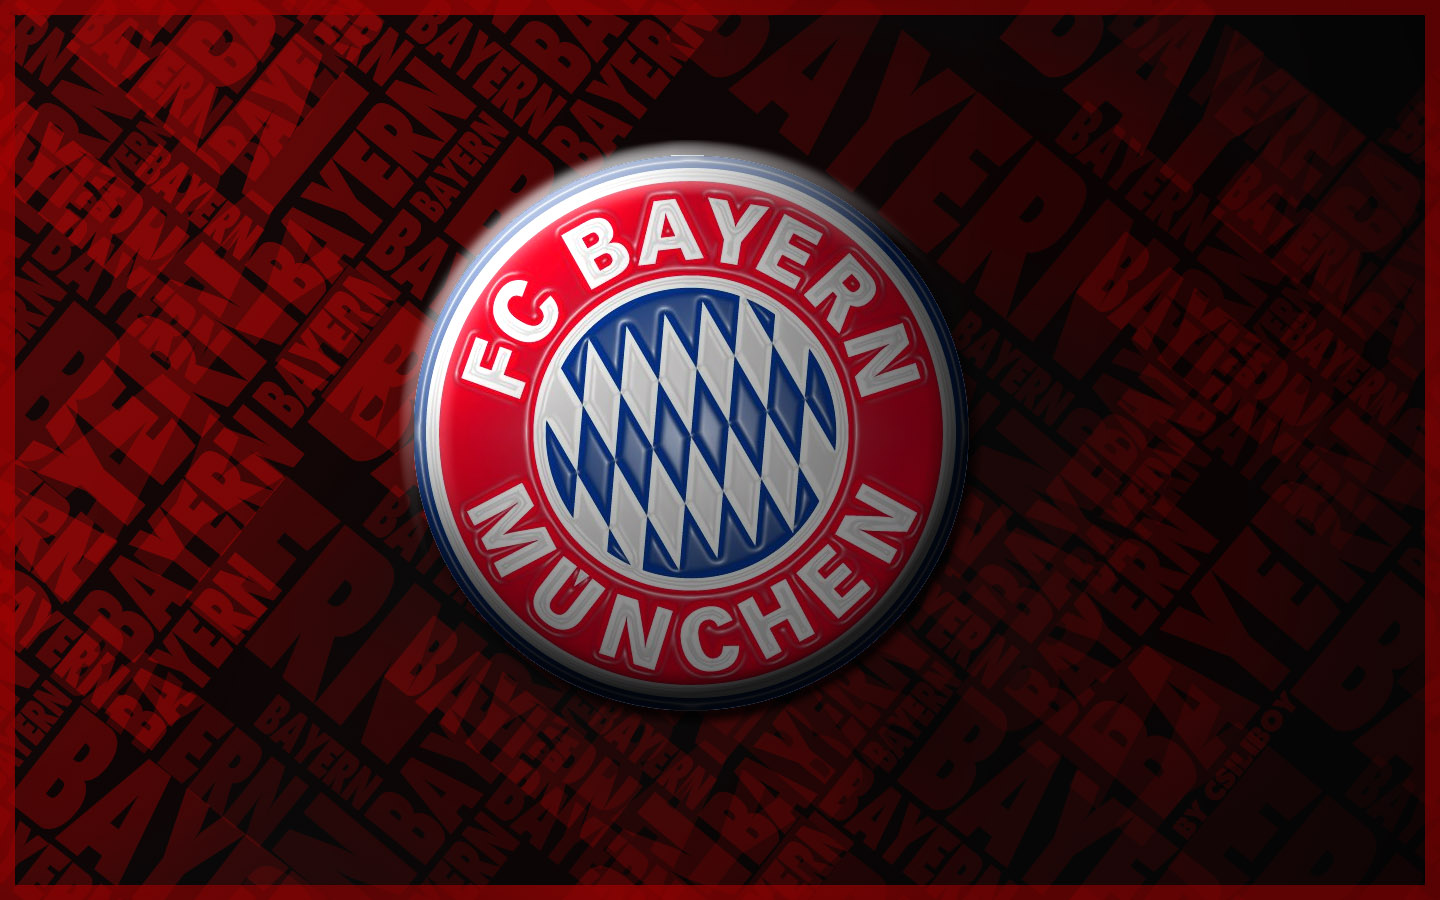 fc bayern munchen wallpaper. Black Bedroom Furniture Sets. Home Design Ideas